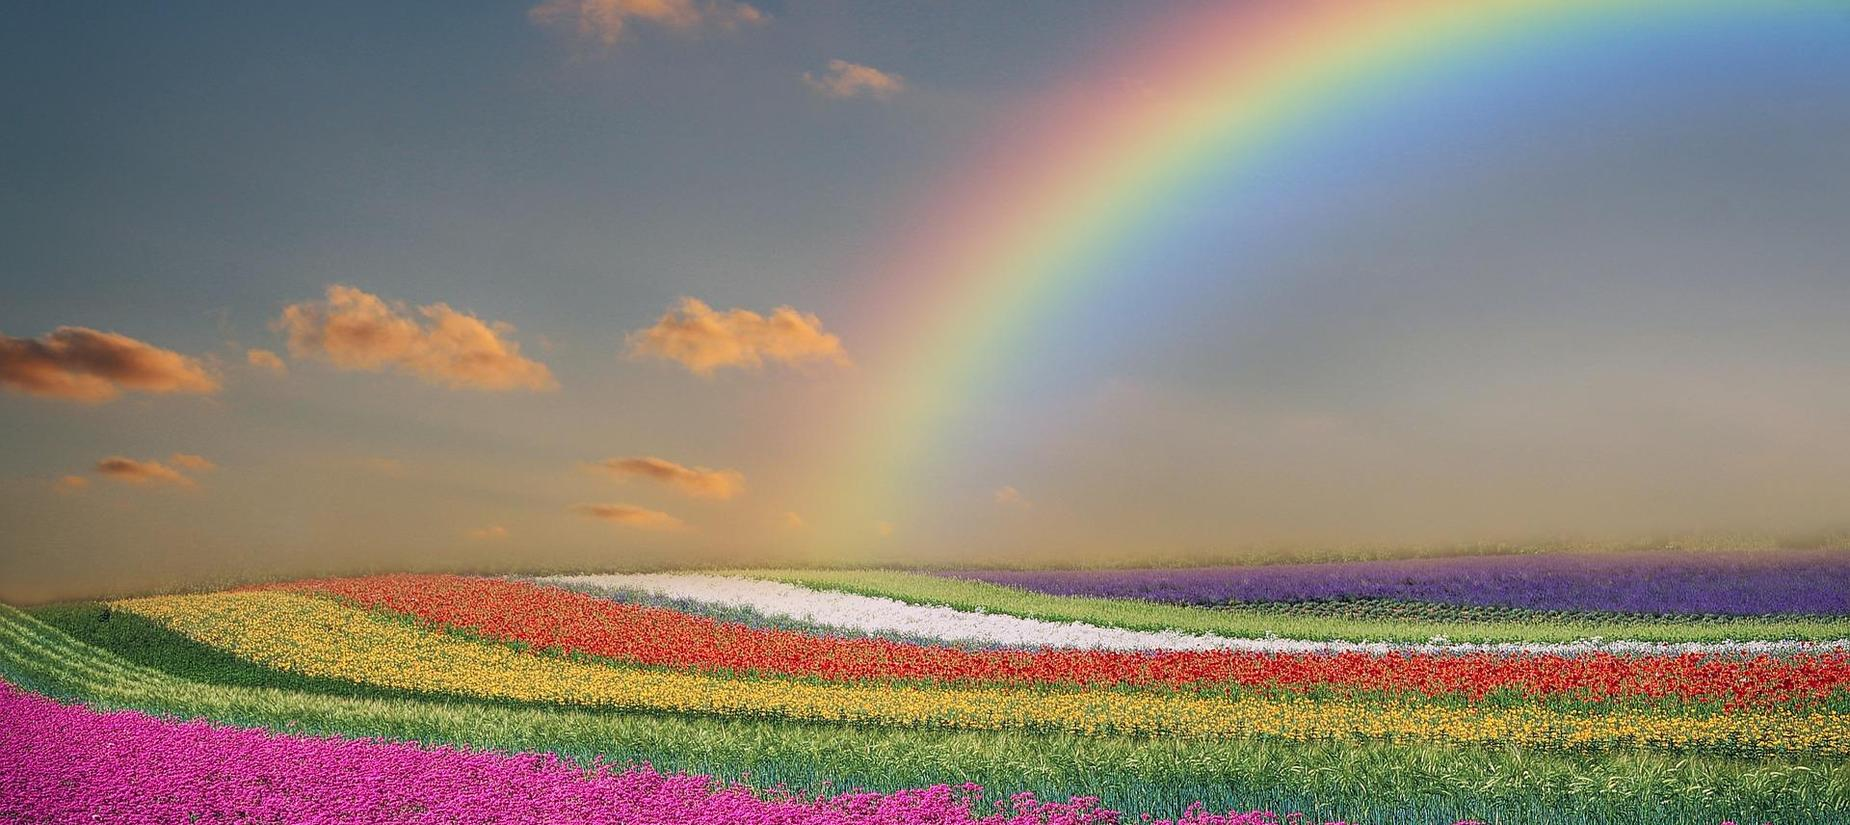 field of flowers and rainbow in sky